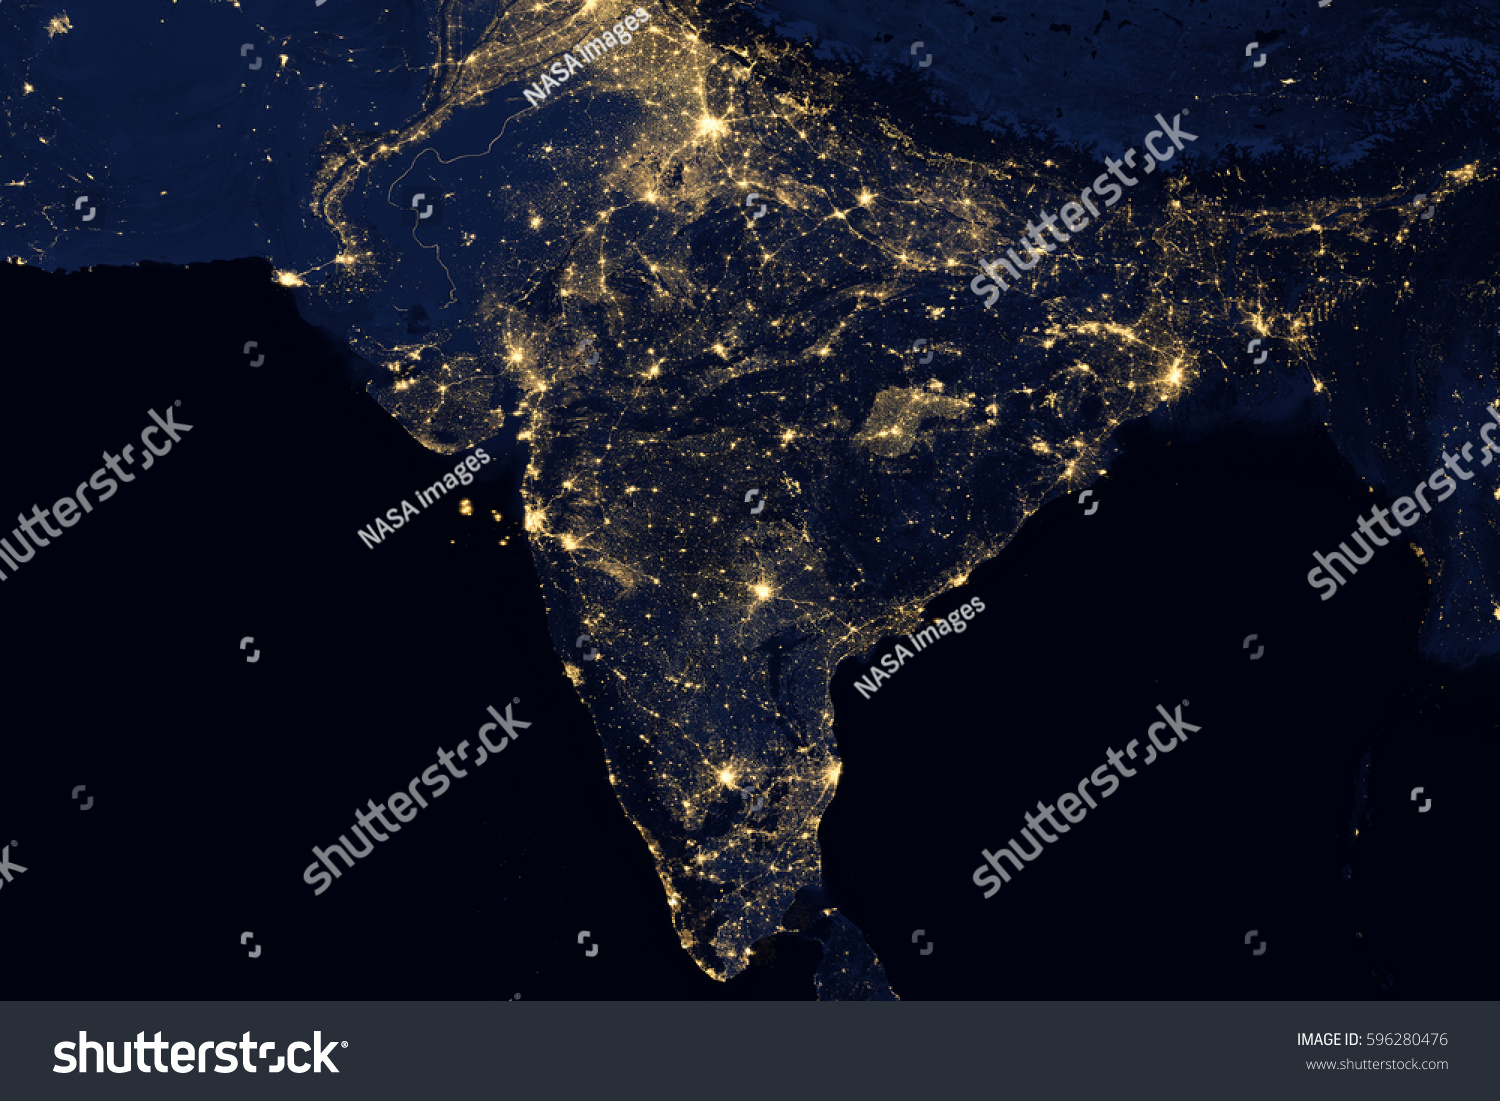 City lights on world map india elements of this image are id 596280476 gumiabroncs Image collections